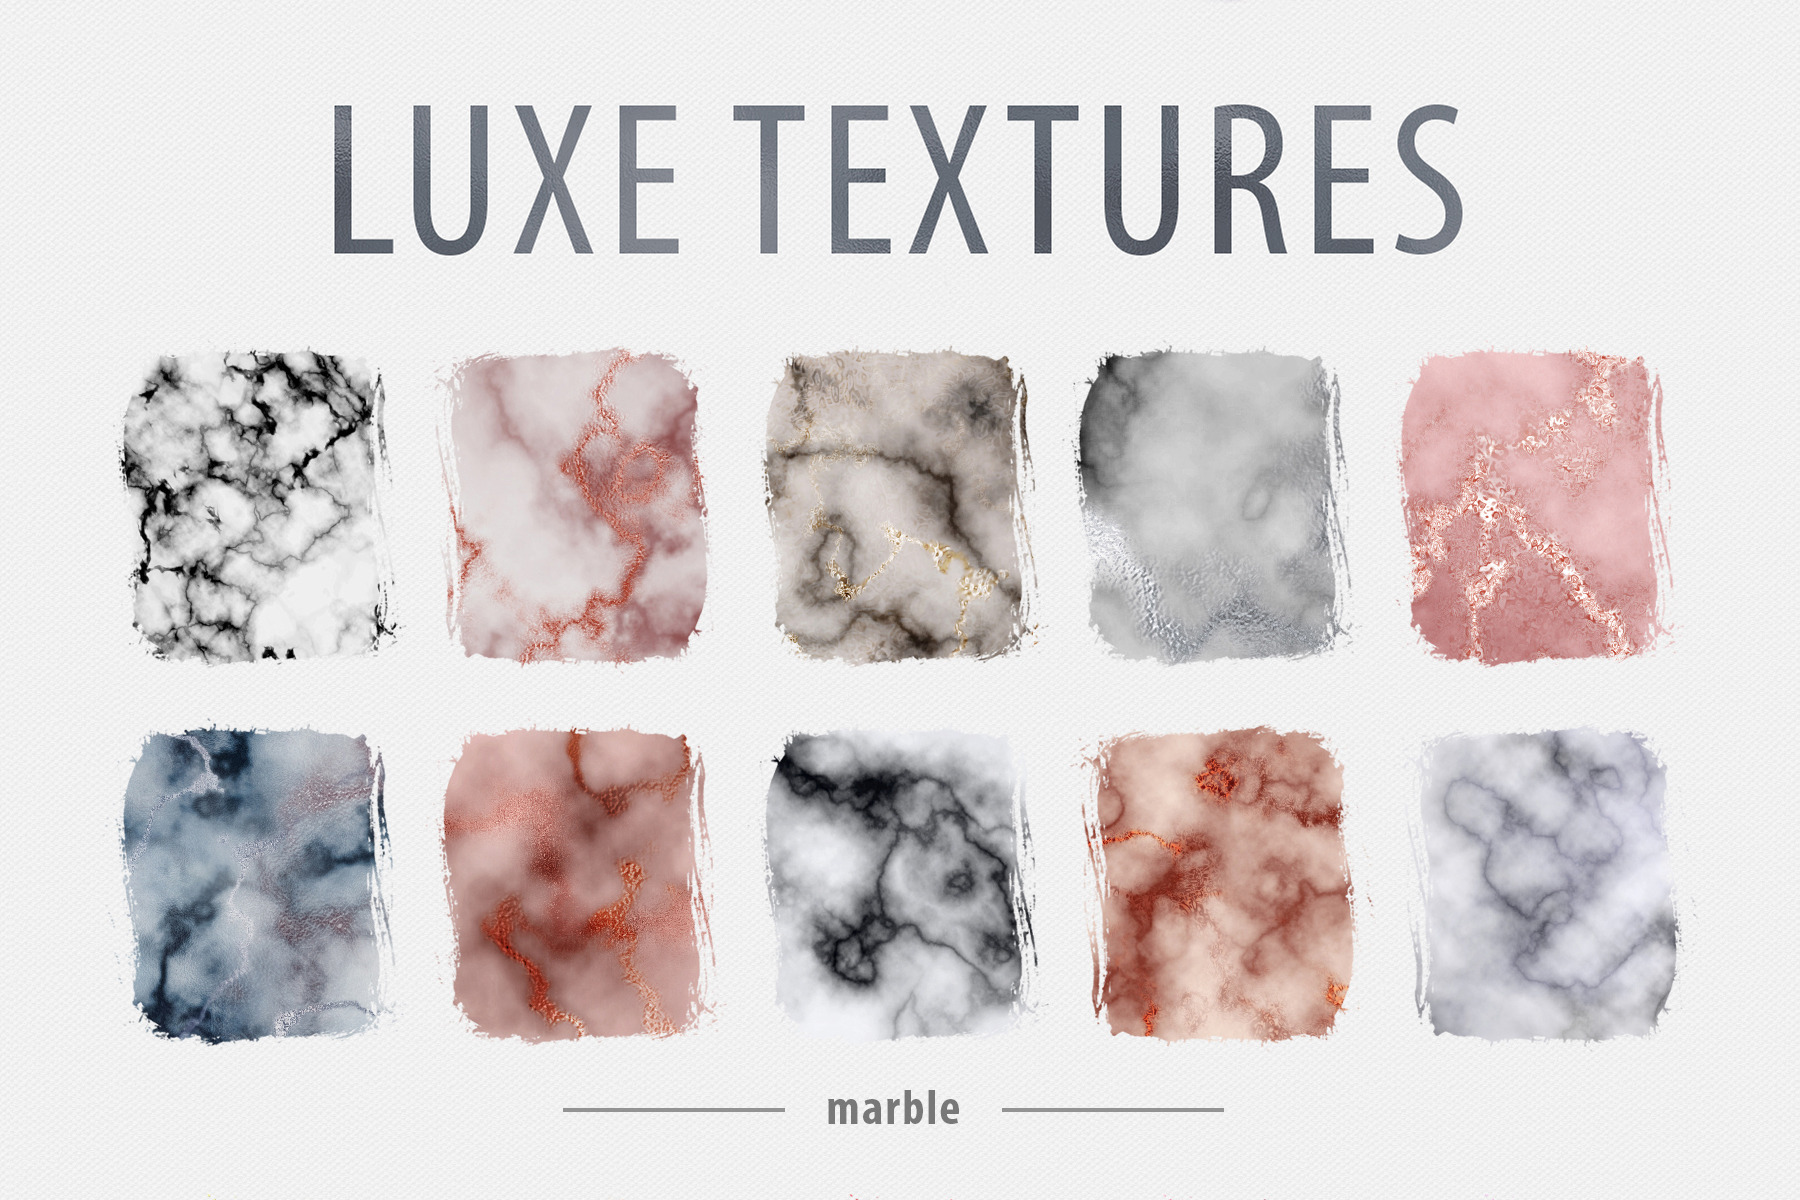 Luxe - 200 Textures and Patterns - Foil, Glitter, Marble example image 14